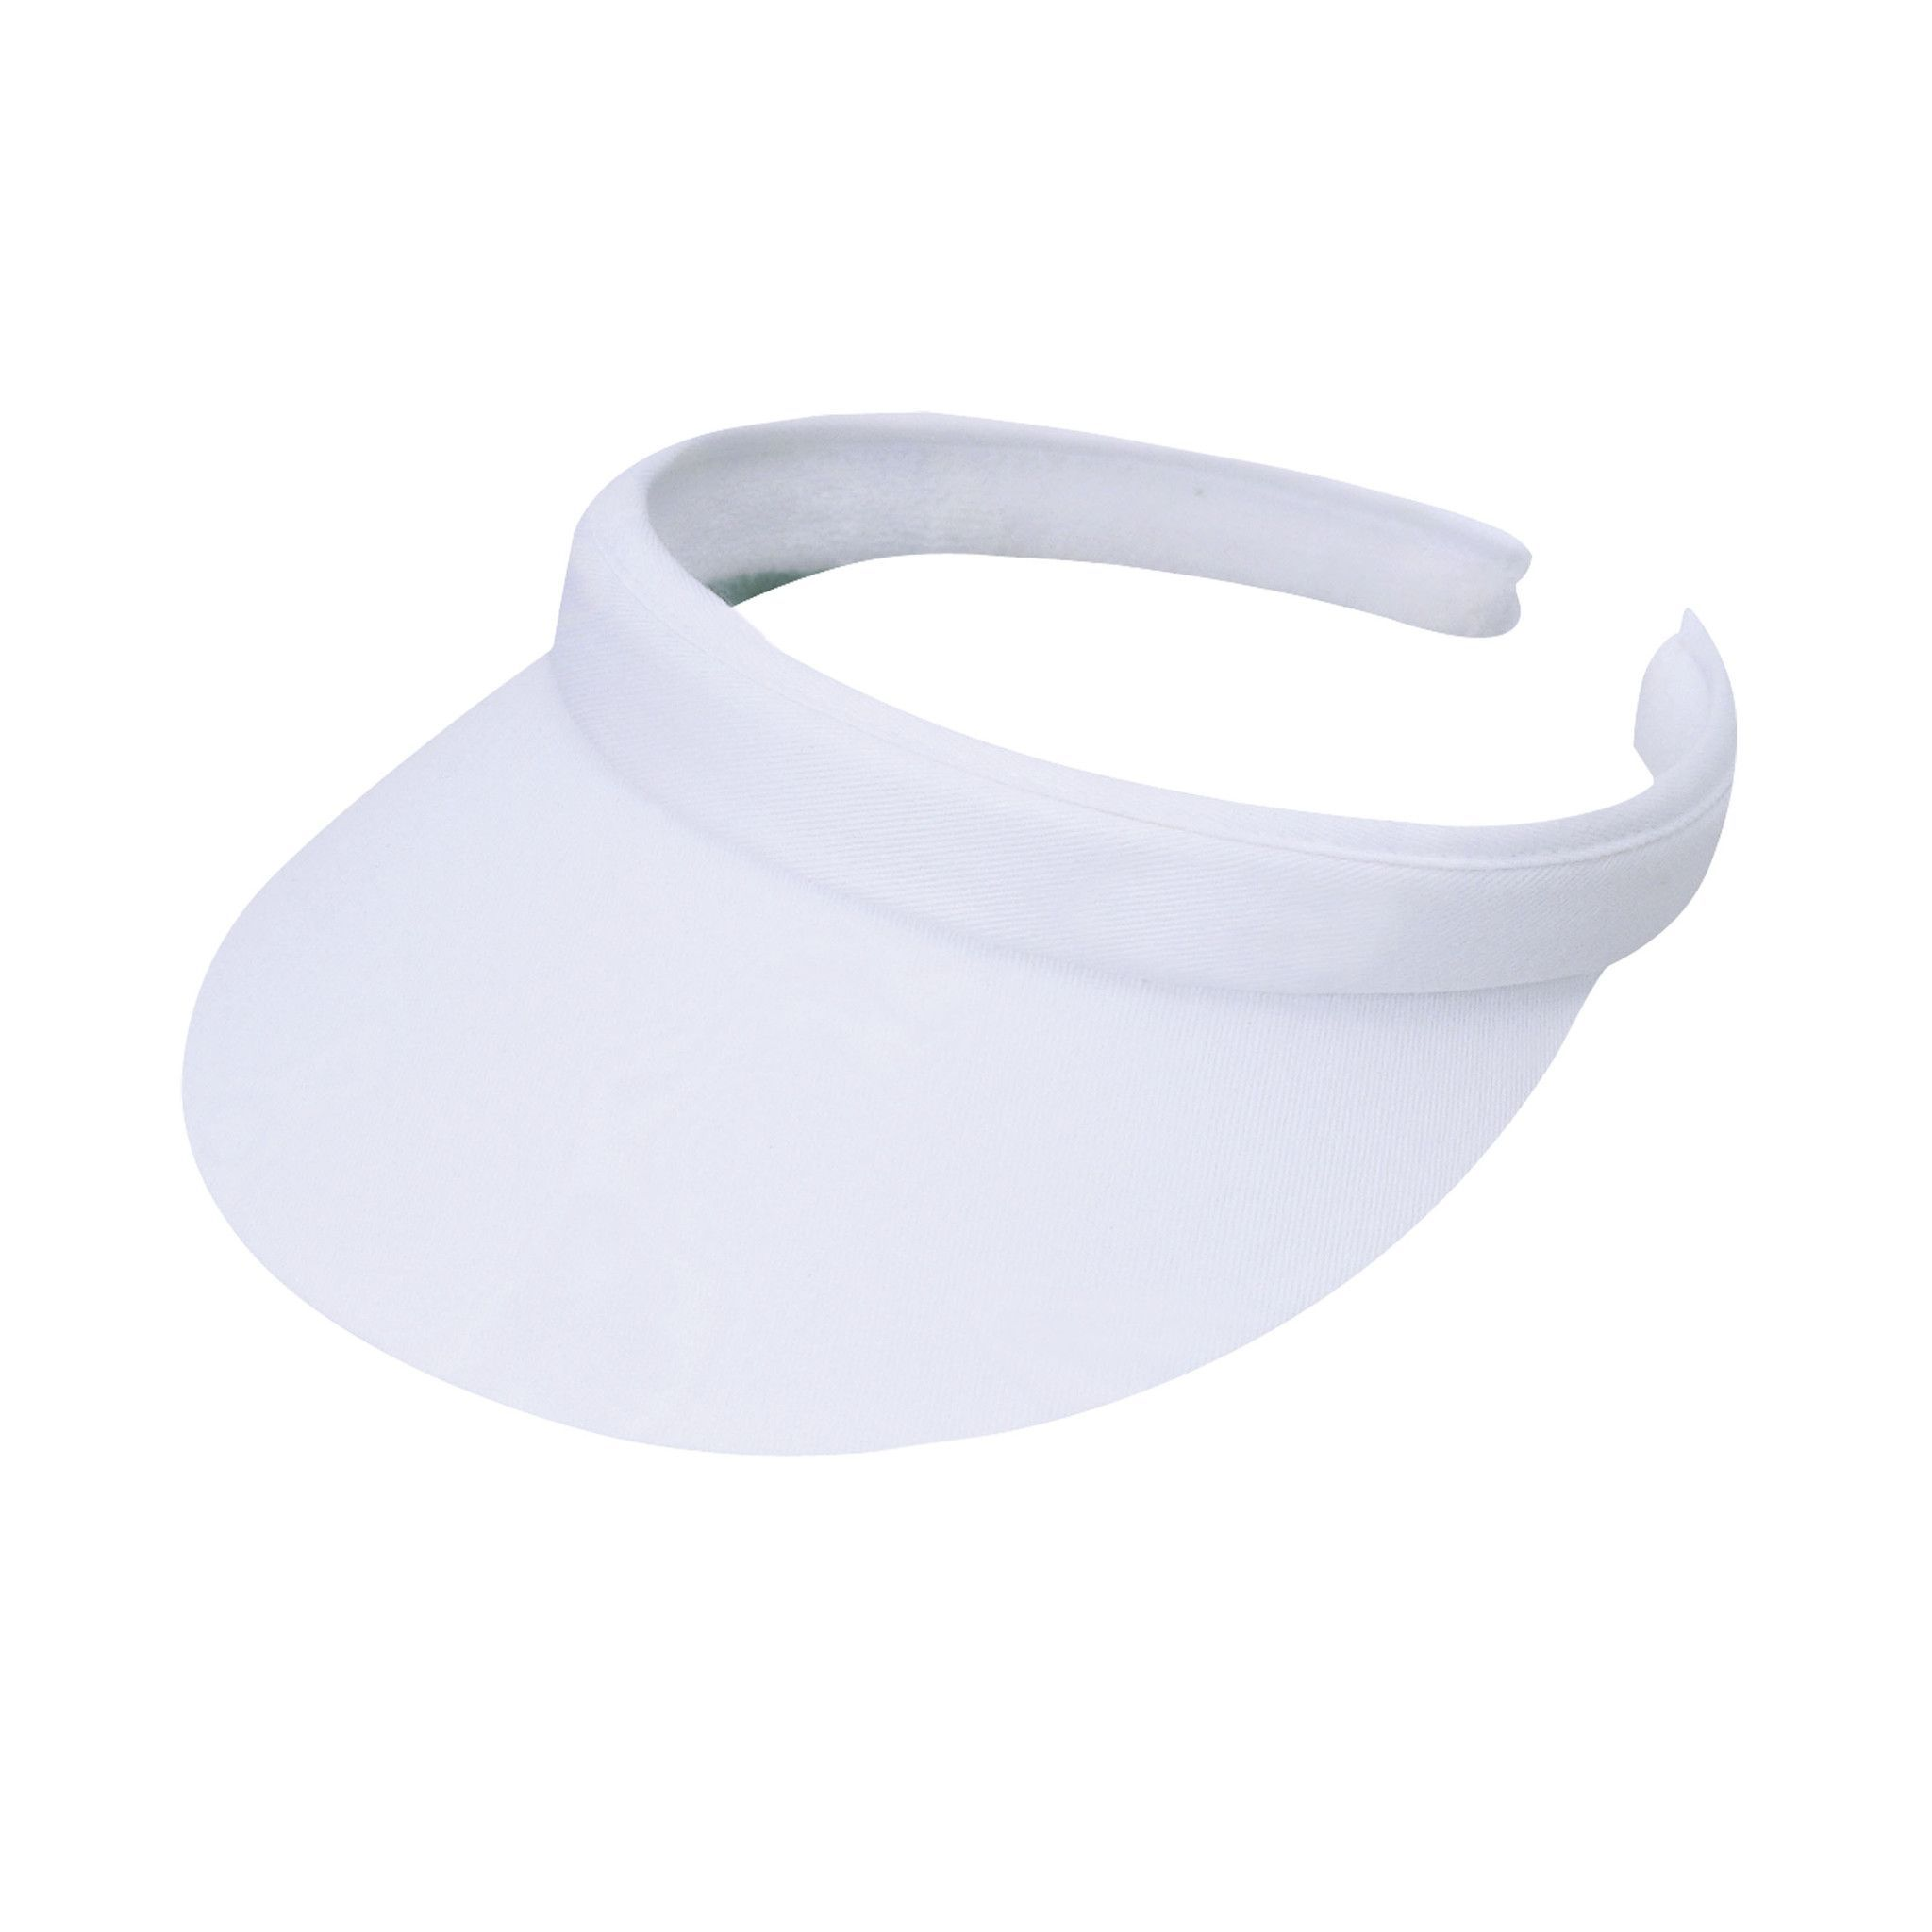 Clip on sun visor with terrycloth band inside. 3